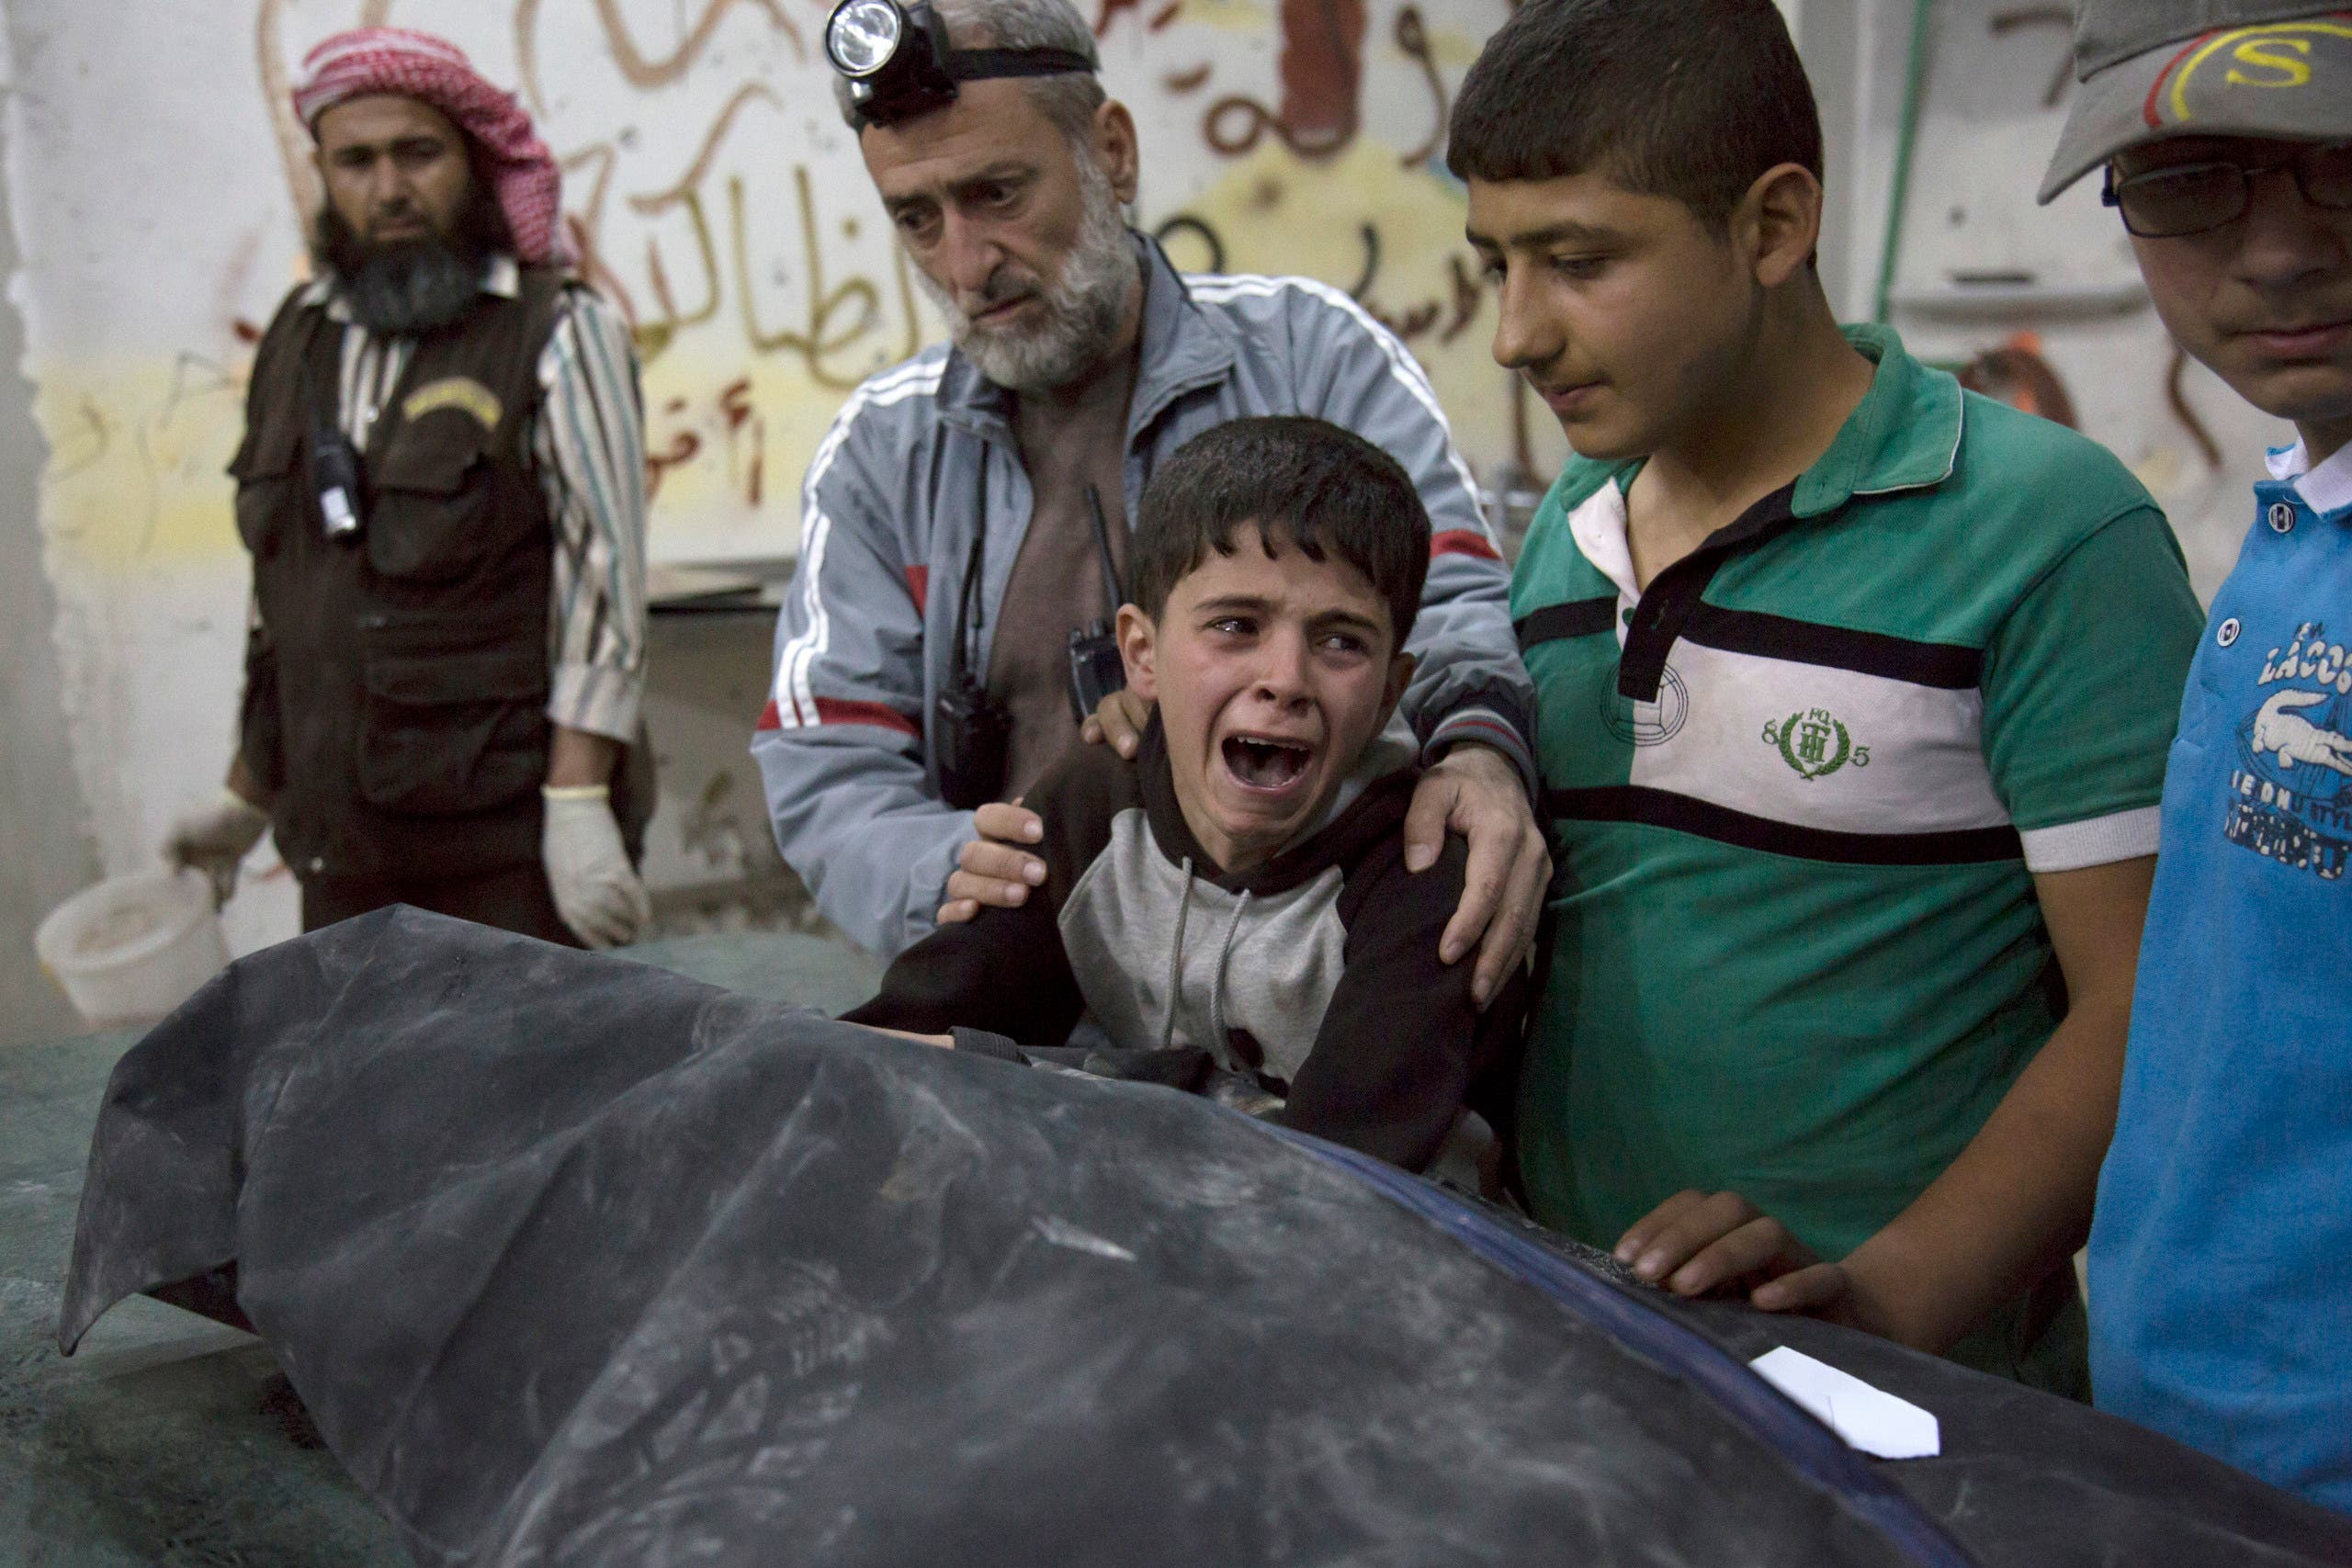 A Syrian boy is comforted as he cries next to the body of a relative who died in a reported airstrike on April 27, 2016 in the rebel-held neighbourhood of al-Soukour in the northern city of Aleppo.  KARAM AL-MASRI / AFP